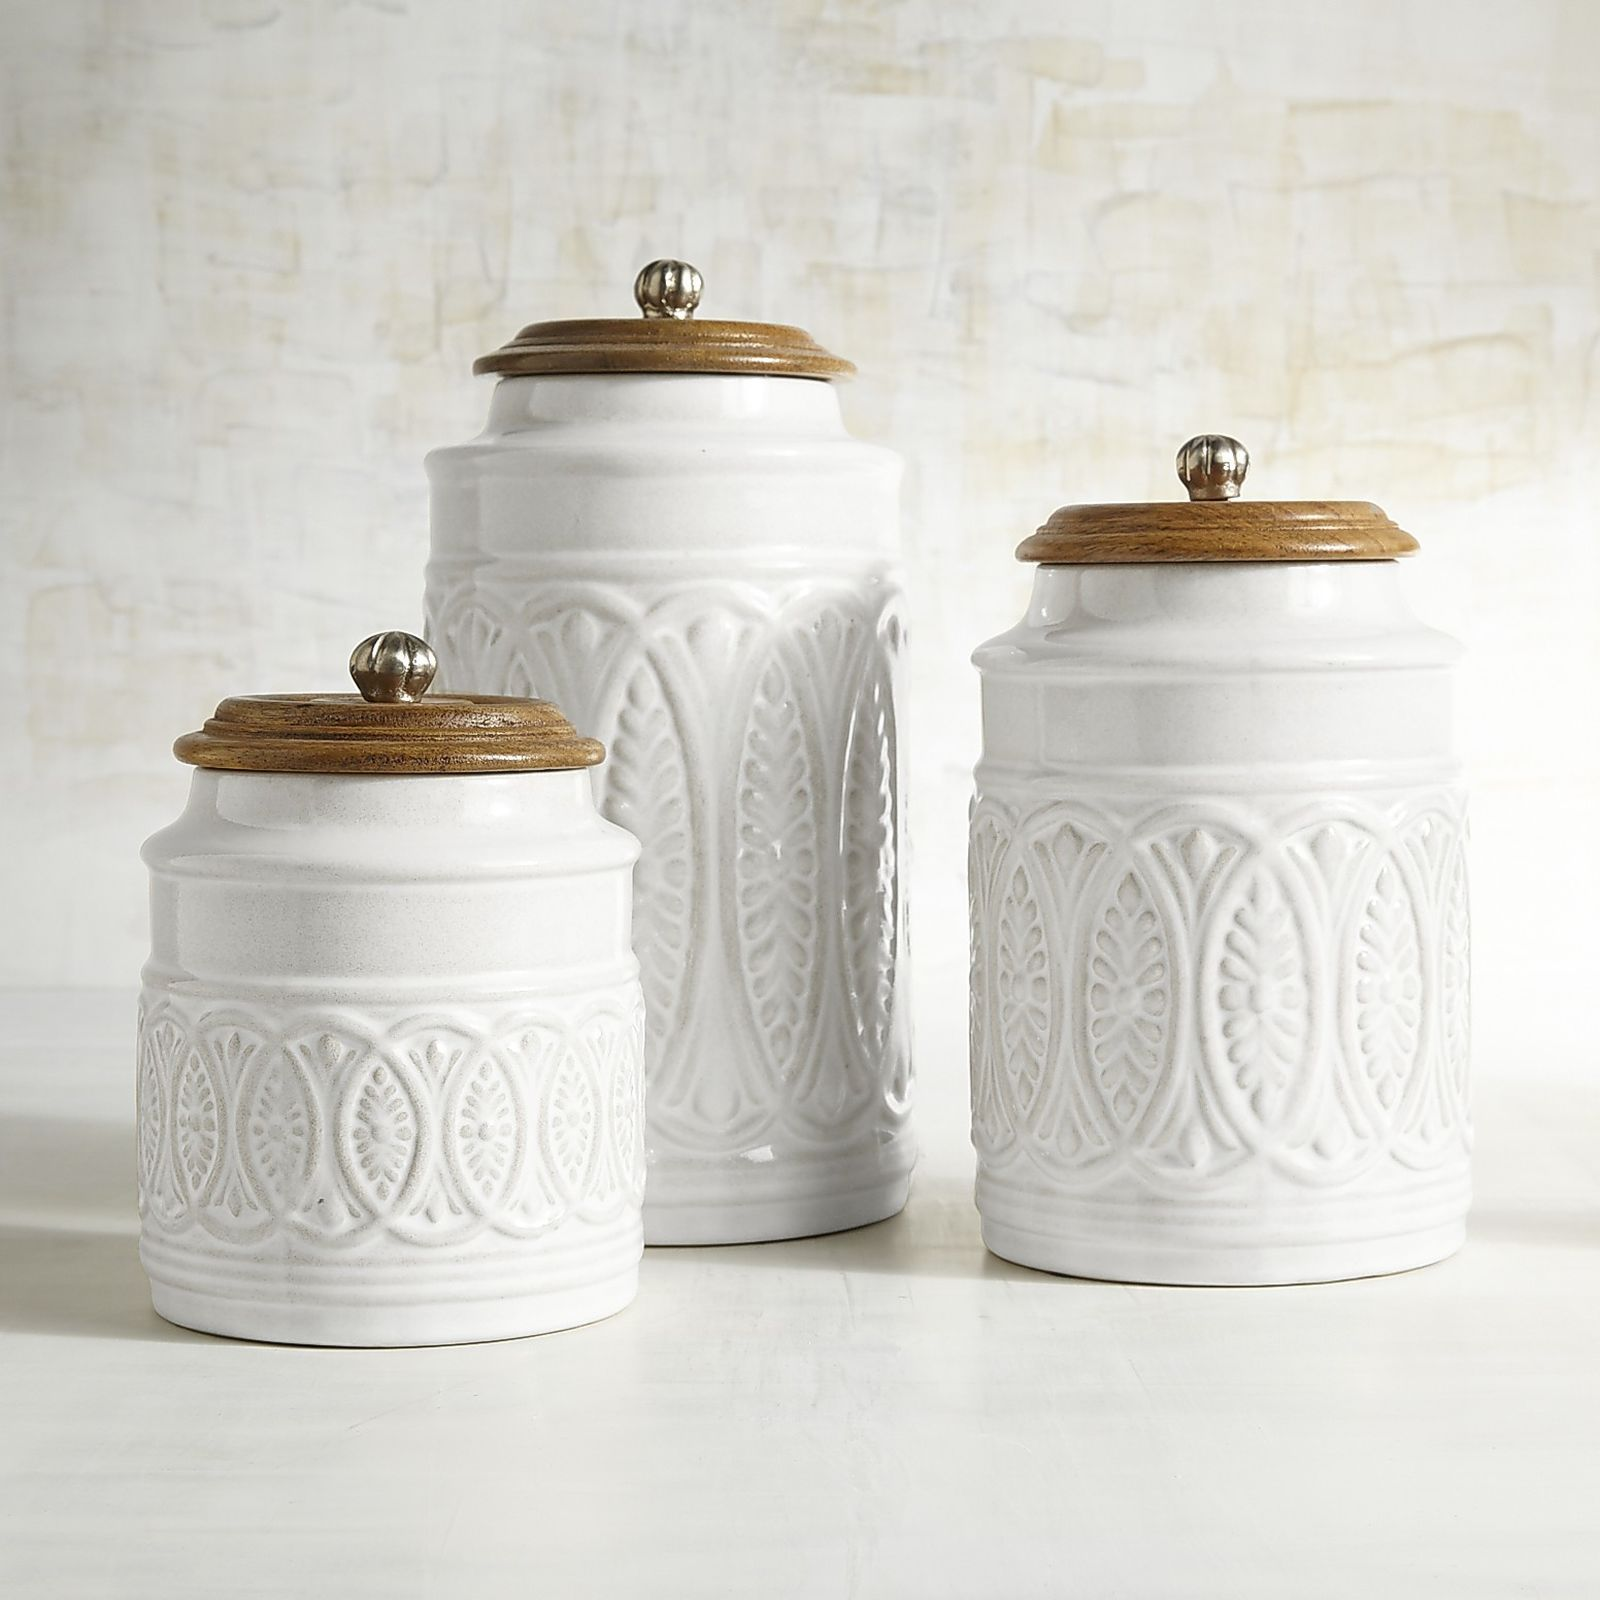 Ivory Farmhouse Canisters | Farmhouse style, Countertop and Compliments